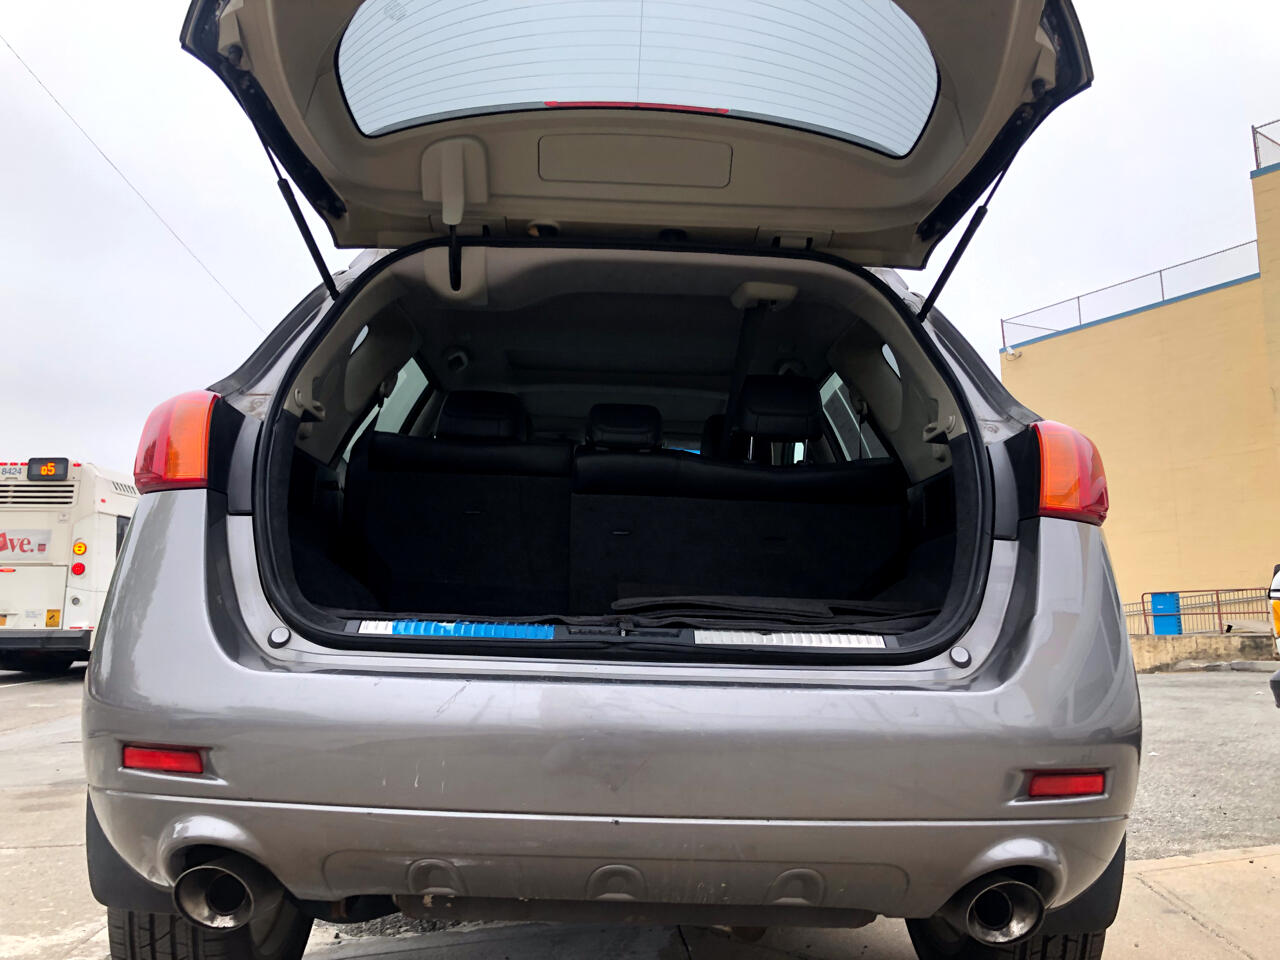 2010 Nissan Murano AWD 4dr LE